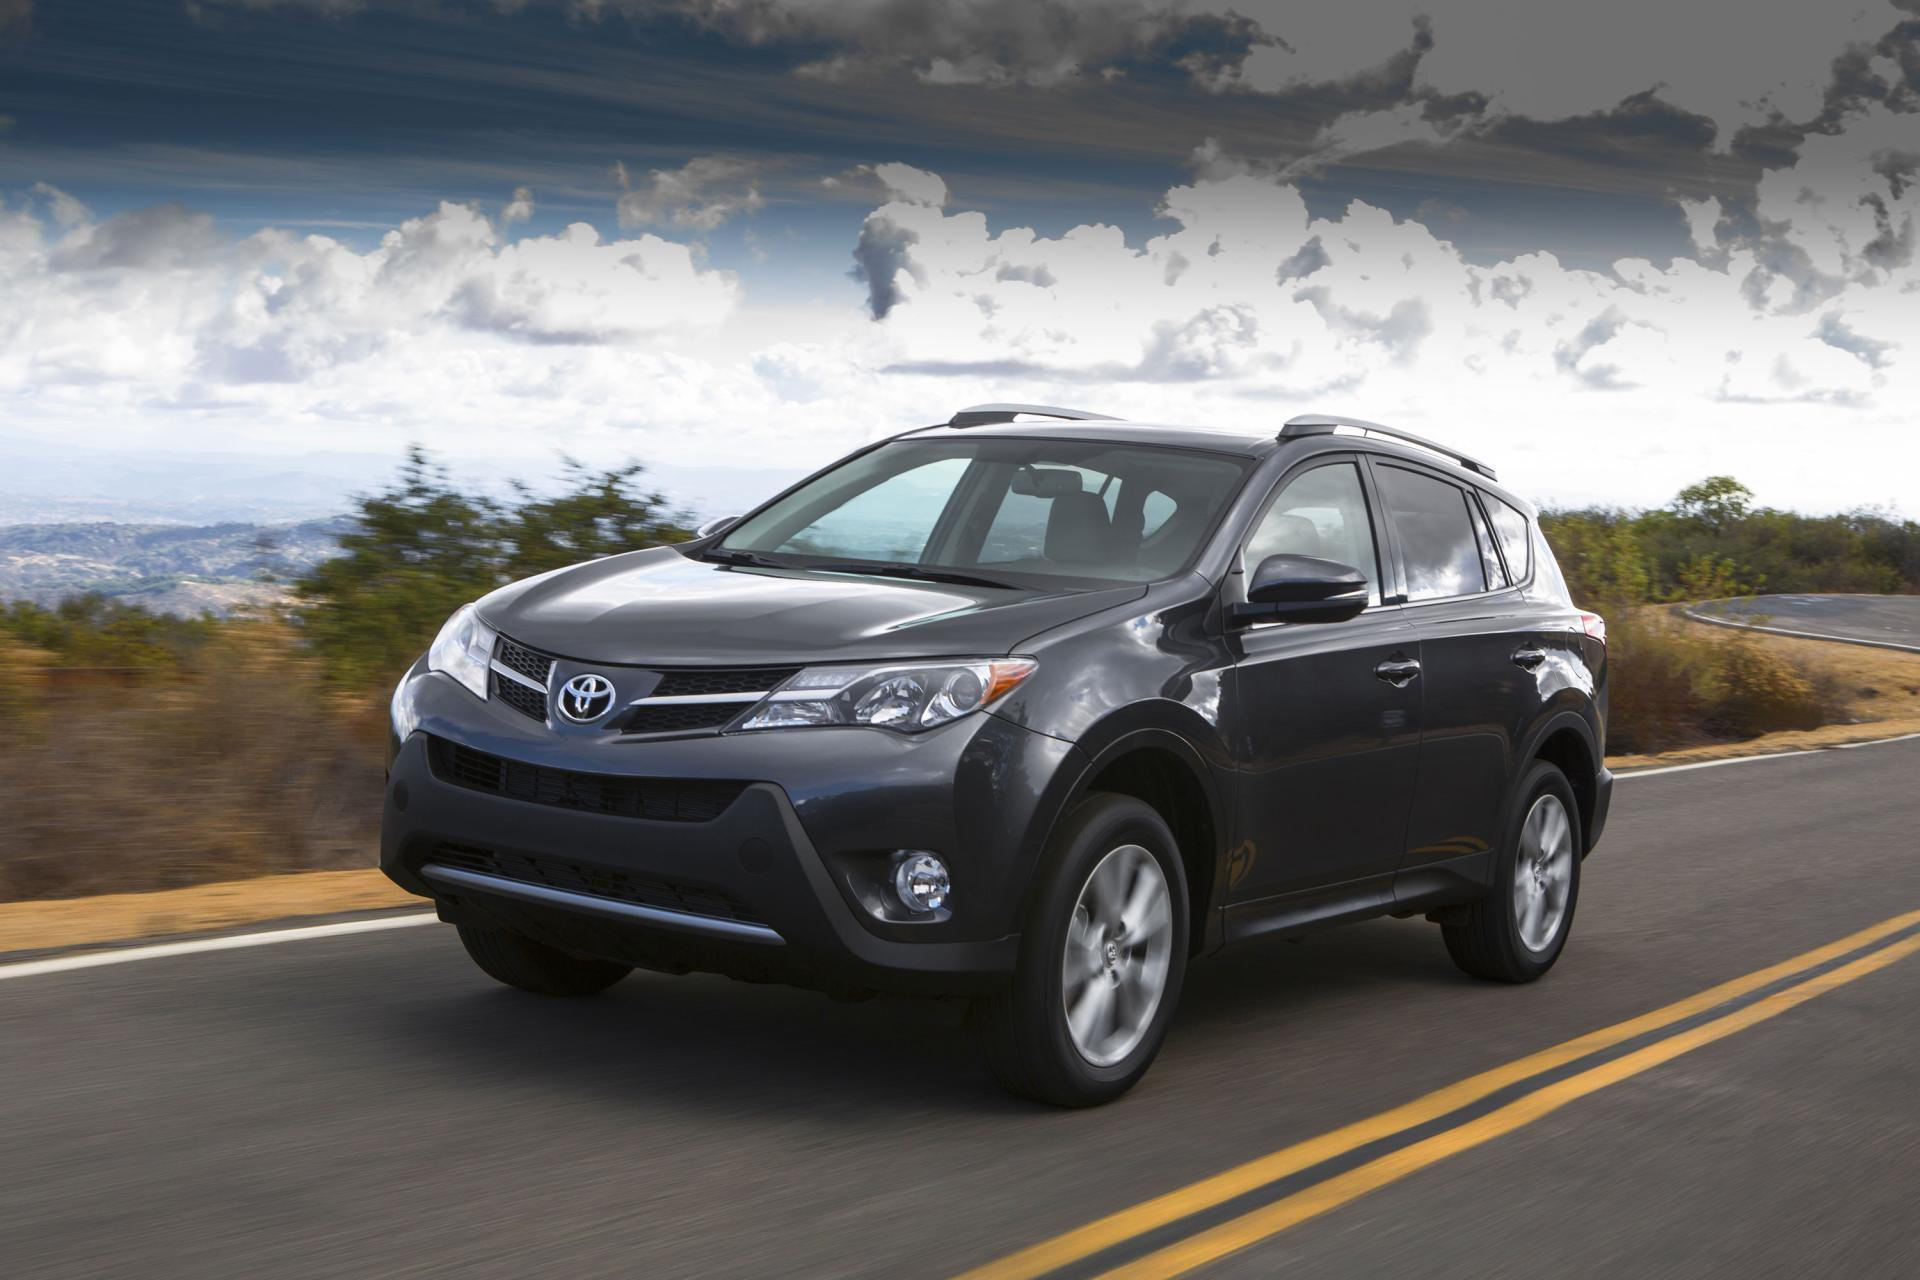 2013 toyota rav4 news and information. Black Bedroom Furniture Sets. Home Design Ideas